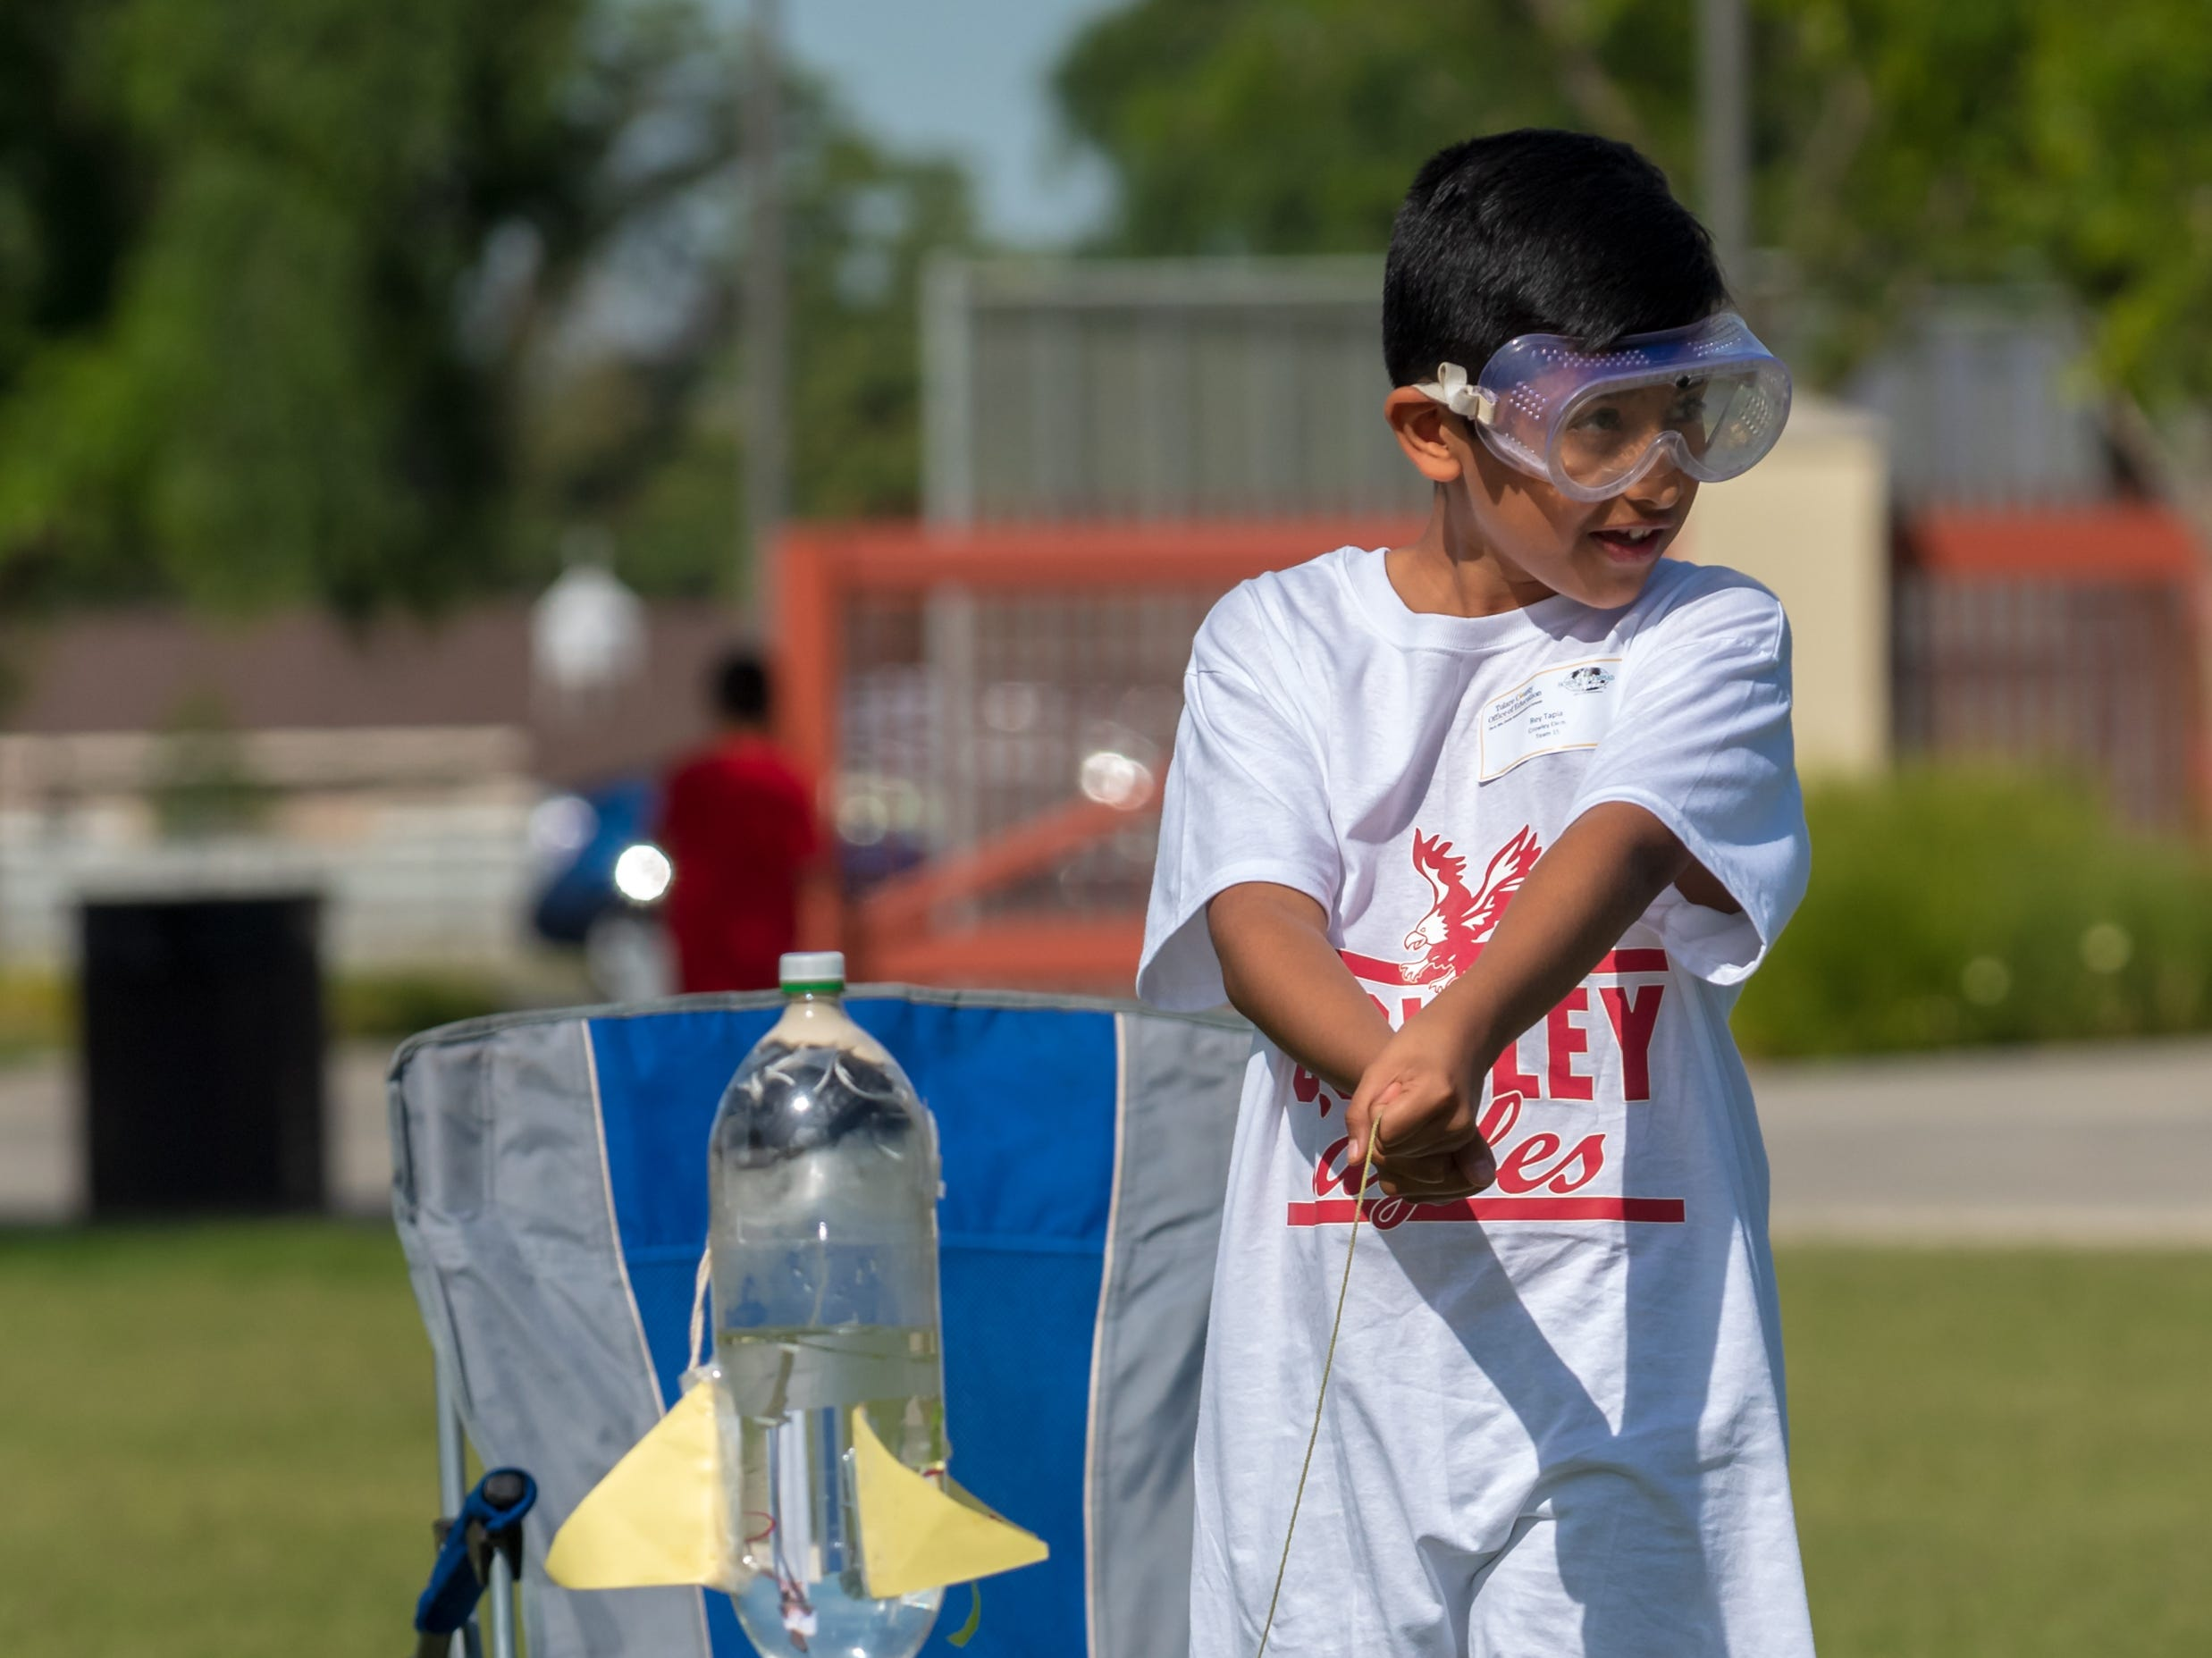 Student from Crowley Elementary School competes in the Water Rocket at the Science Olympiad held at Mission Oak High School in Tulare, Saturday, April. 27, 2019.